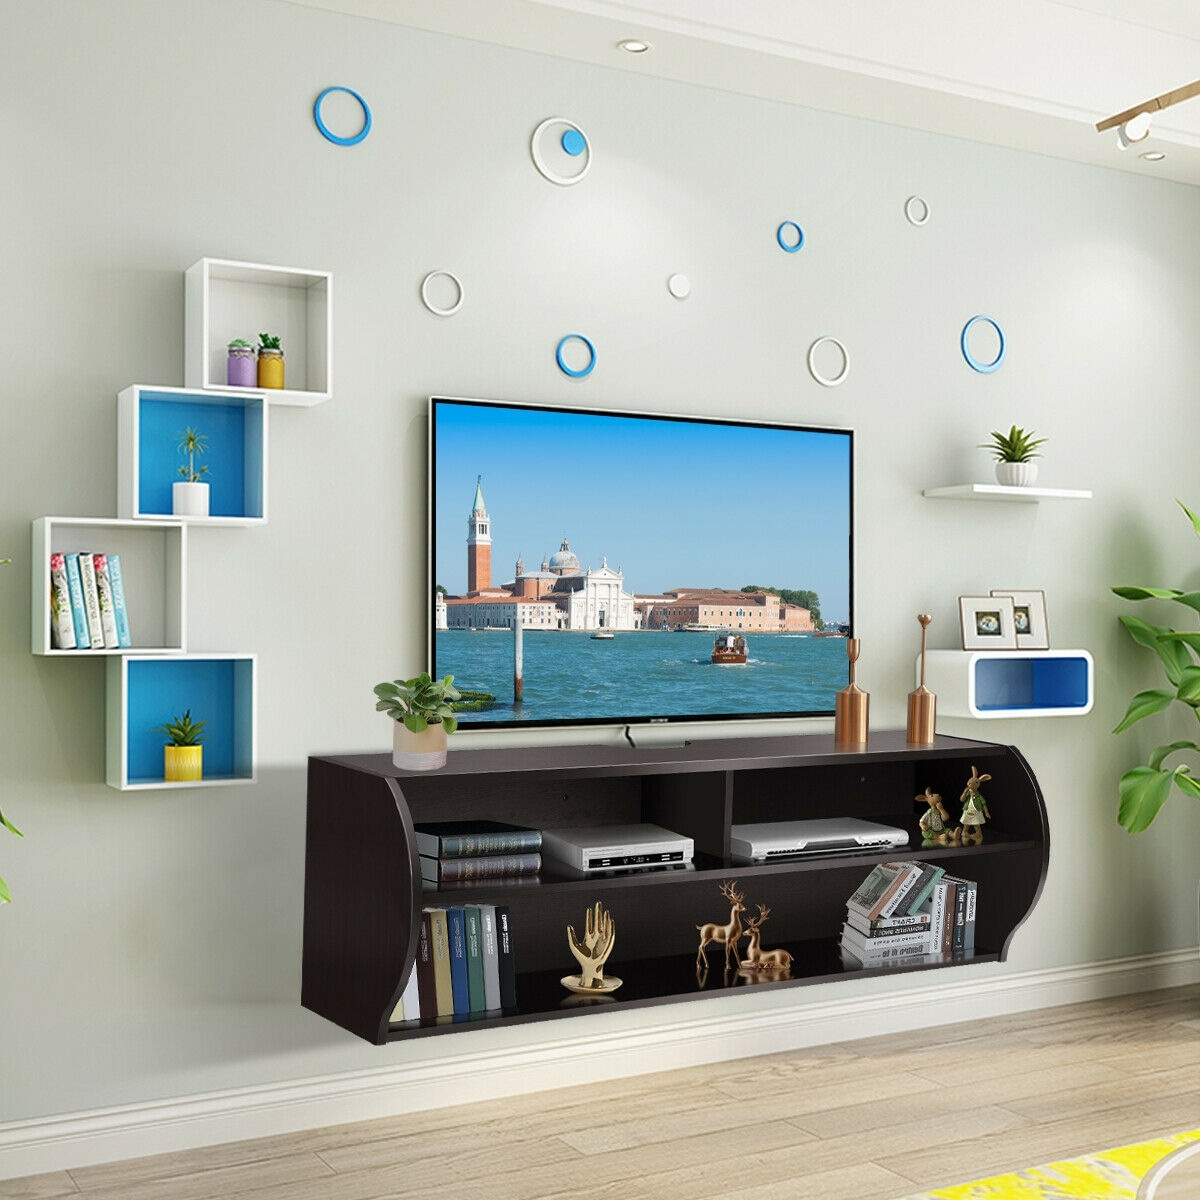 Costway 485 Wall Mounted Audiovideo Tv Stands Console Living Room Furniture Wshelves